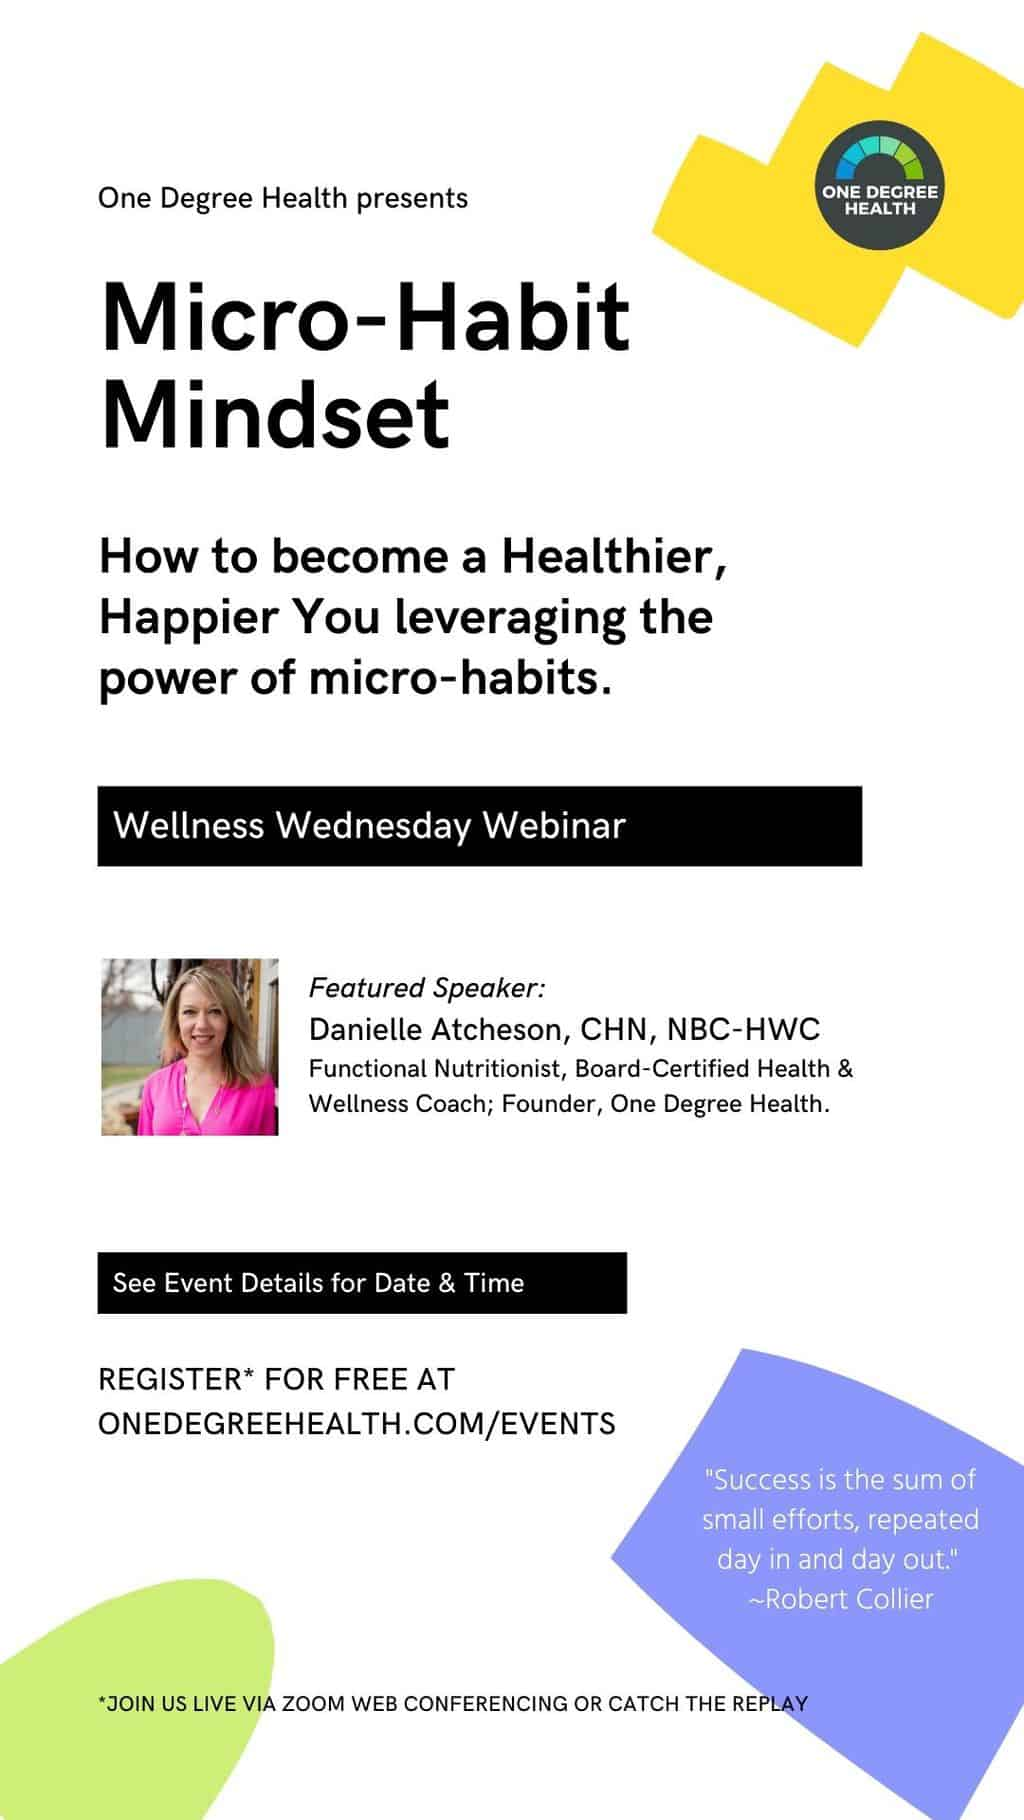 WEBINAR - The Microhabit Mindset from One Degree Health - Story Image